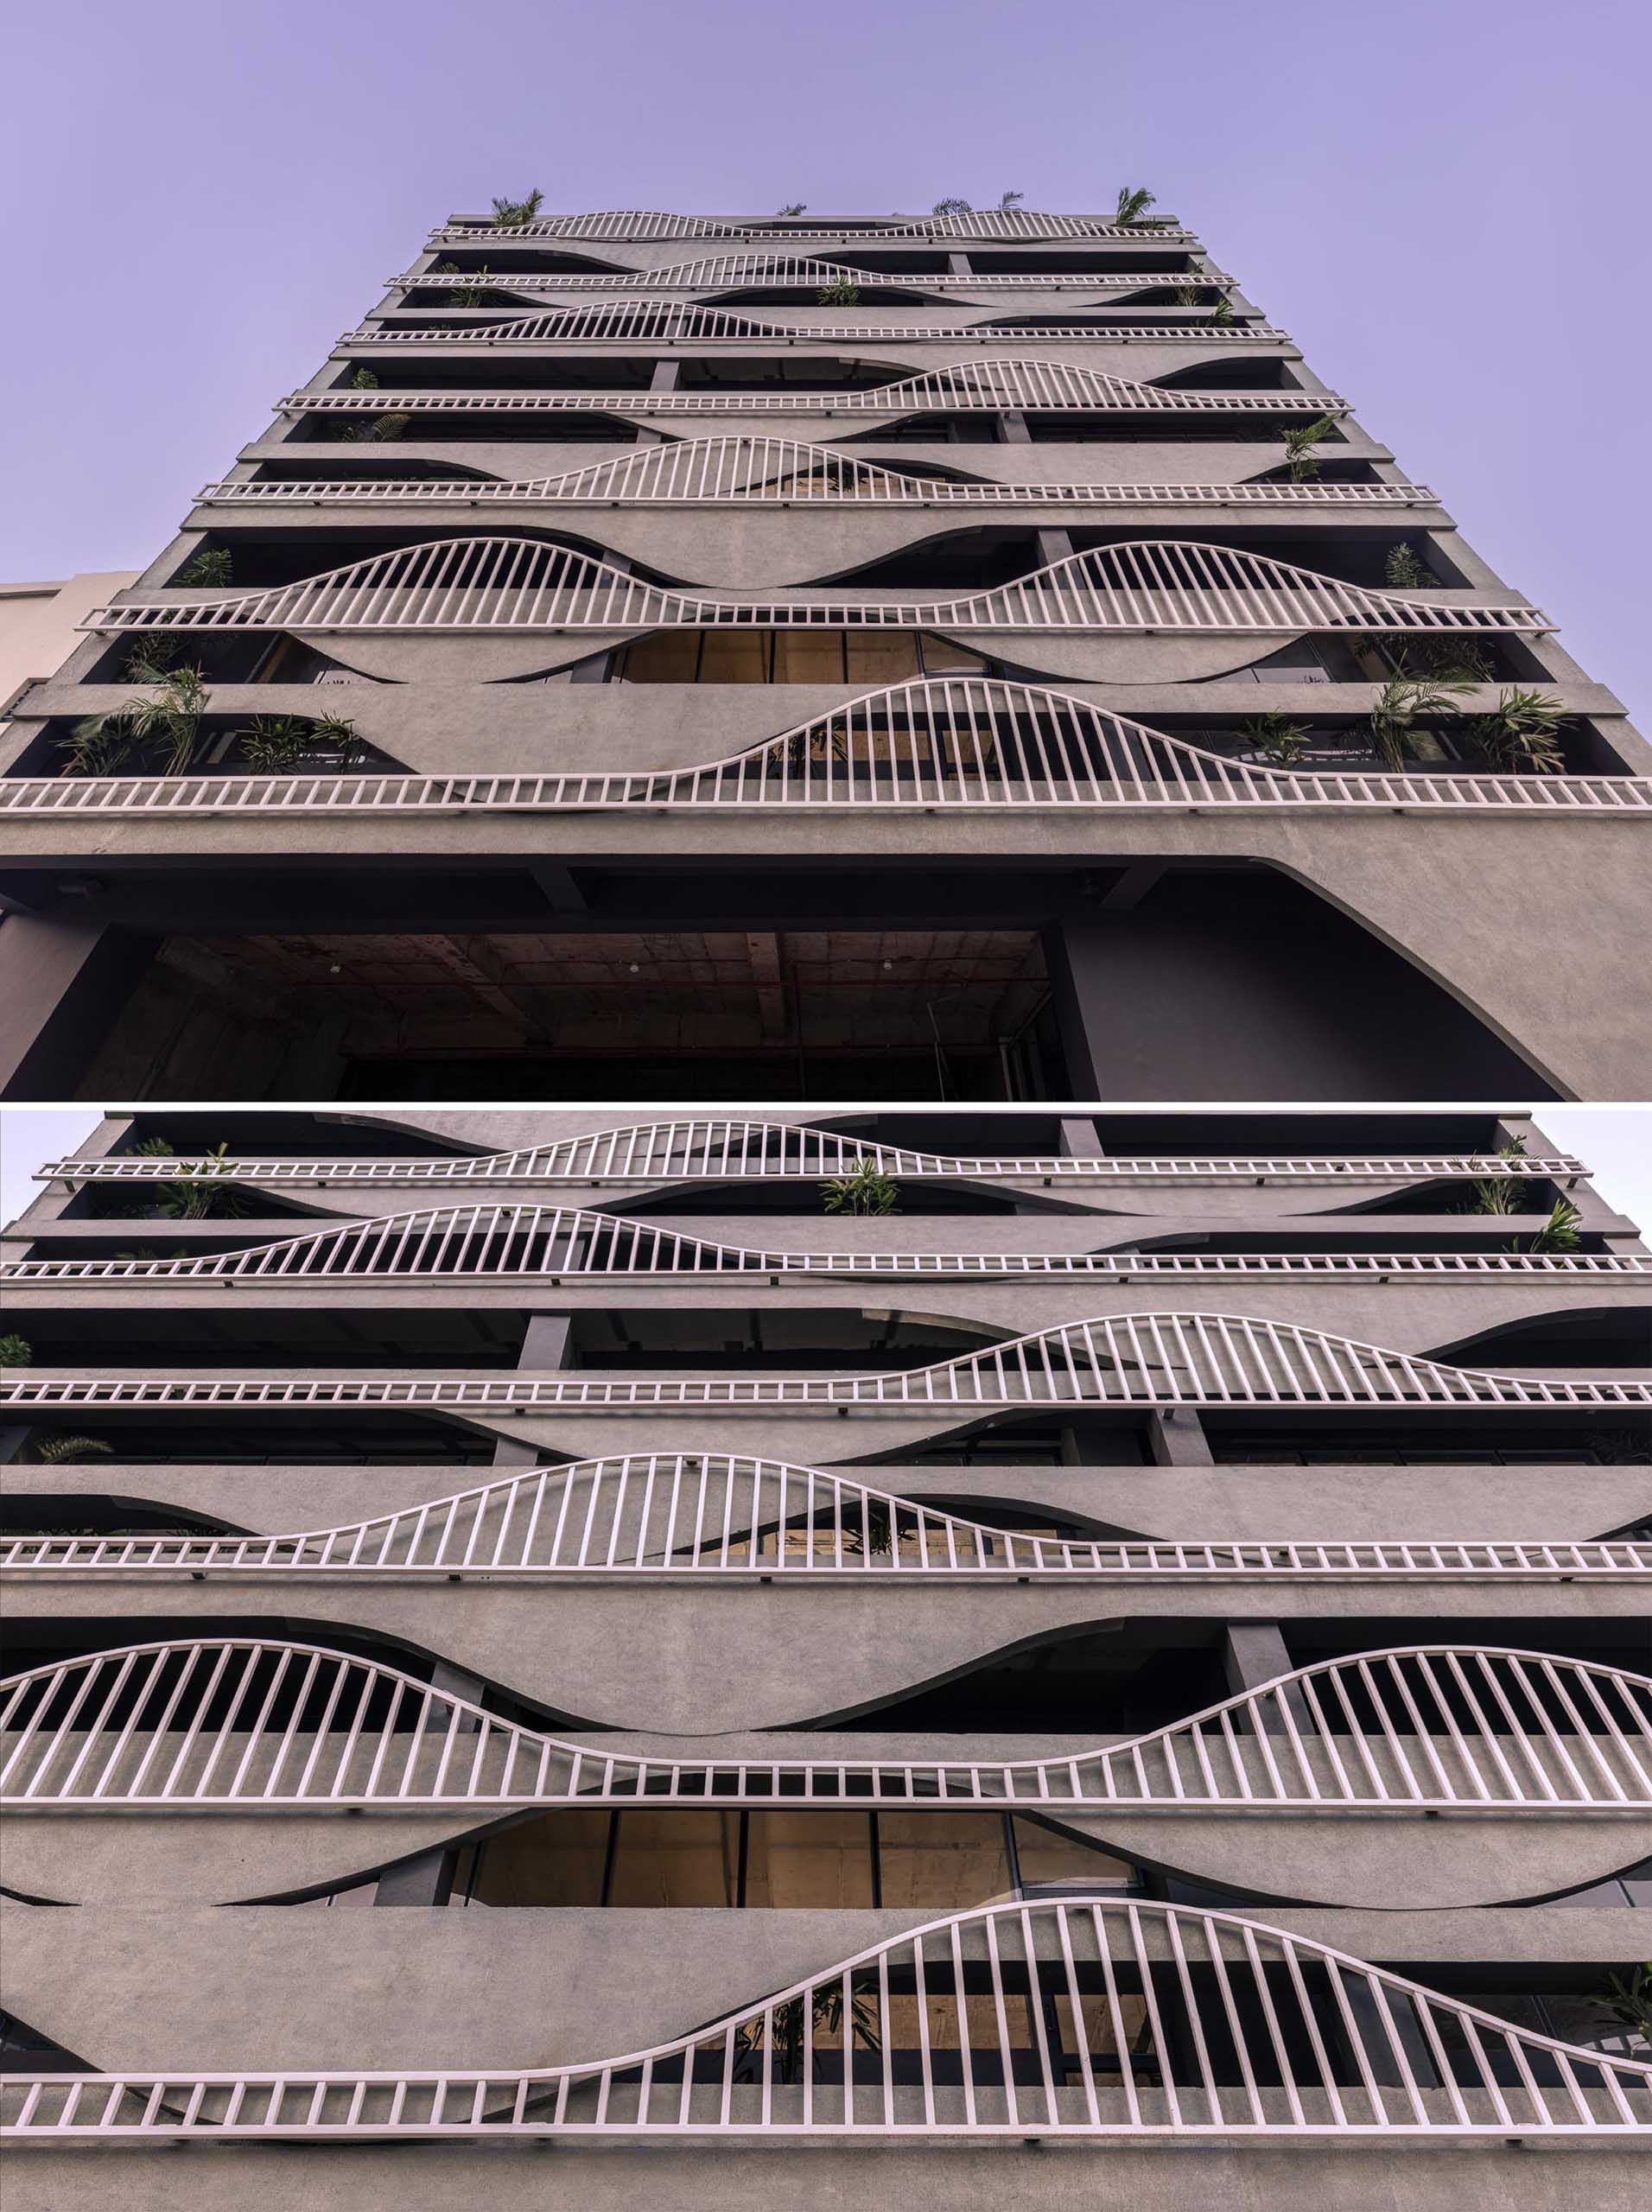 A unique building facade that's designed to look like melting concrete, with complimentary balcony railings.